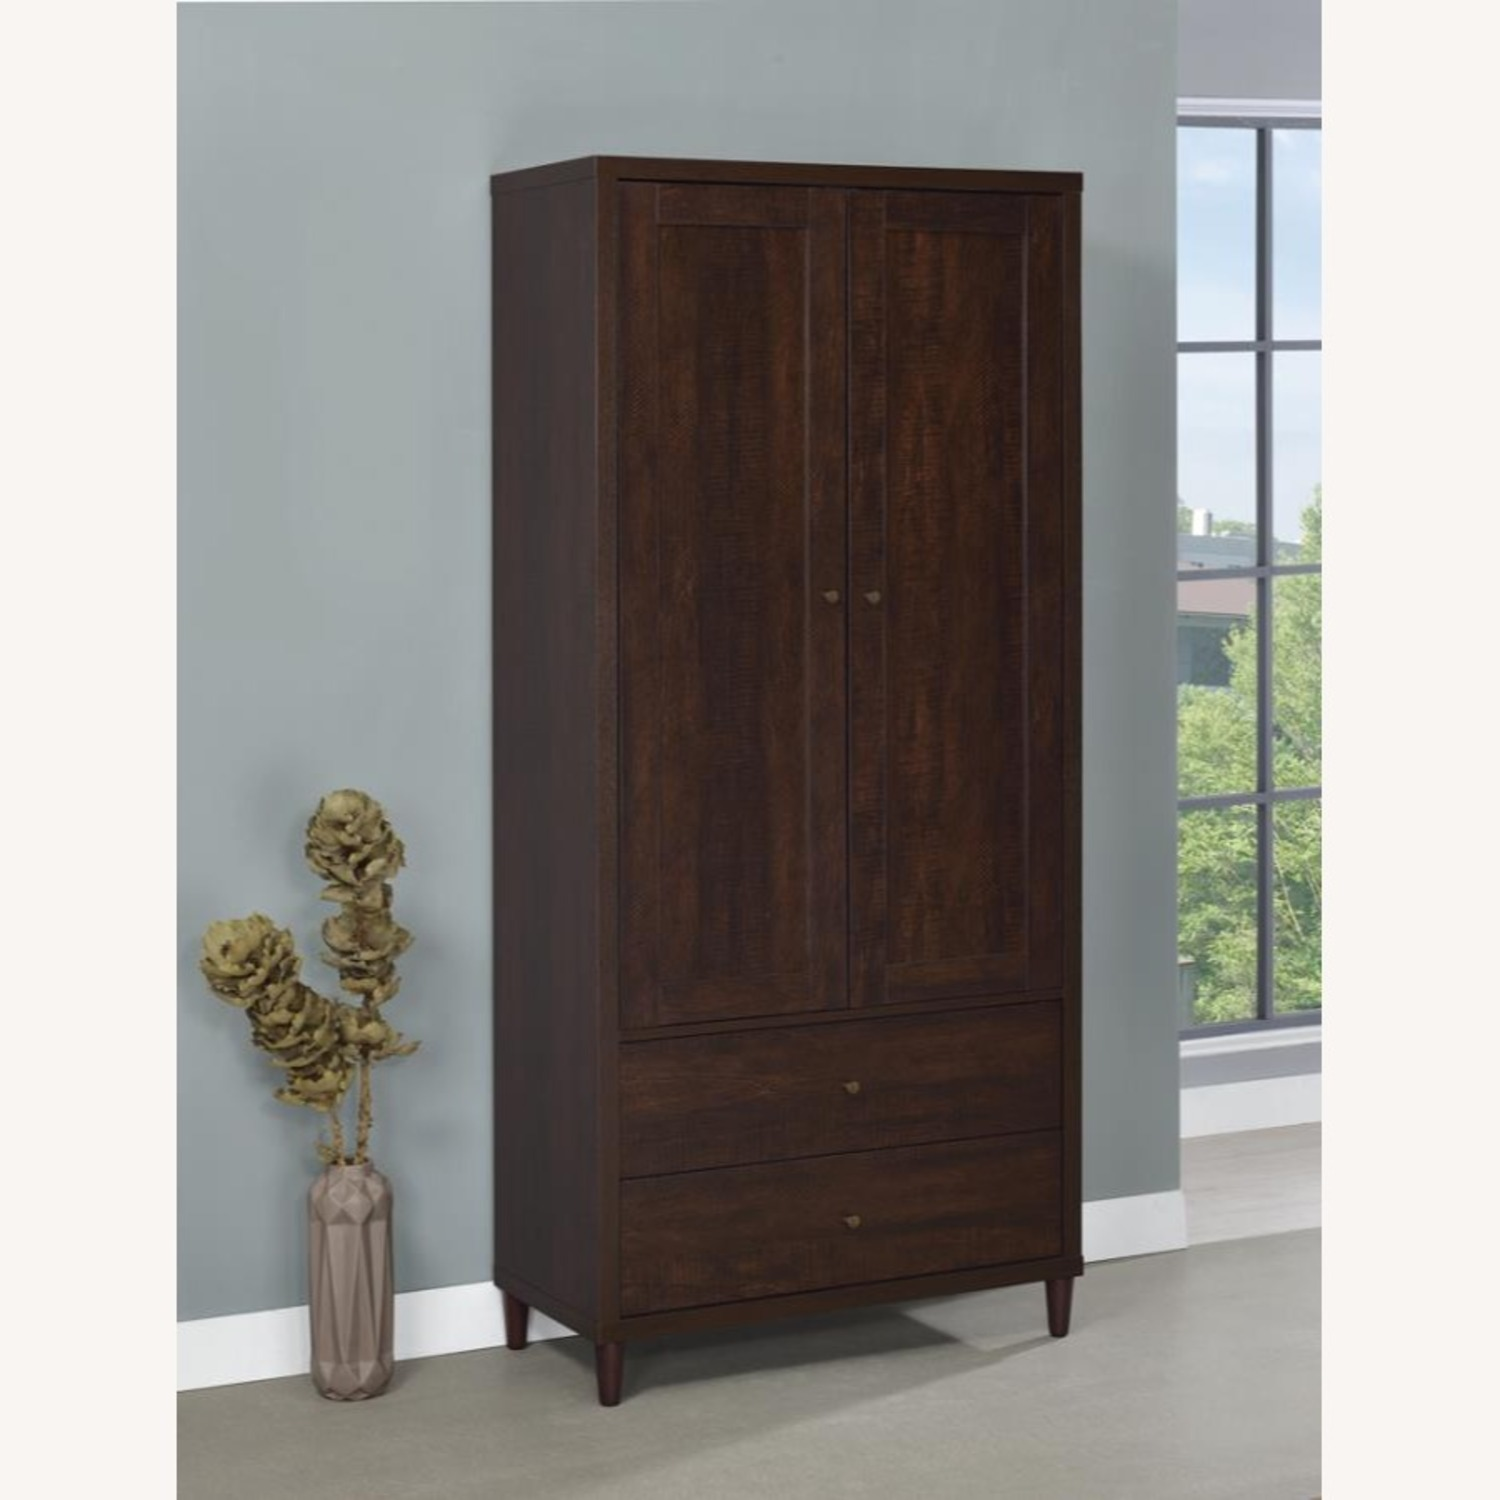 Accent Cabinet In Rich Rustic Tobacco Finish - image-6